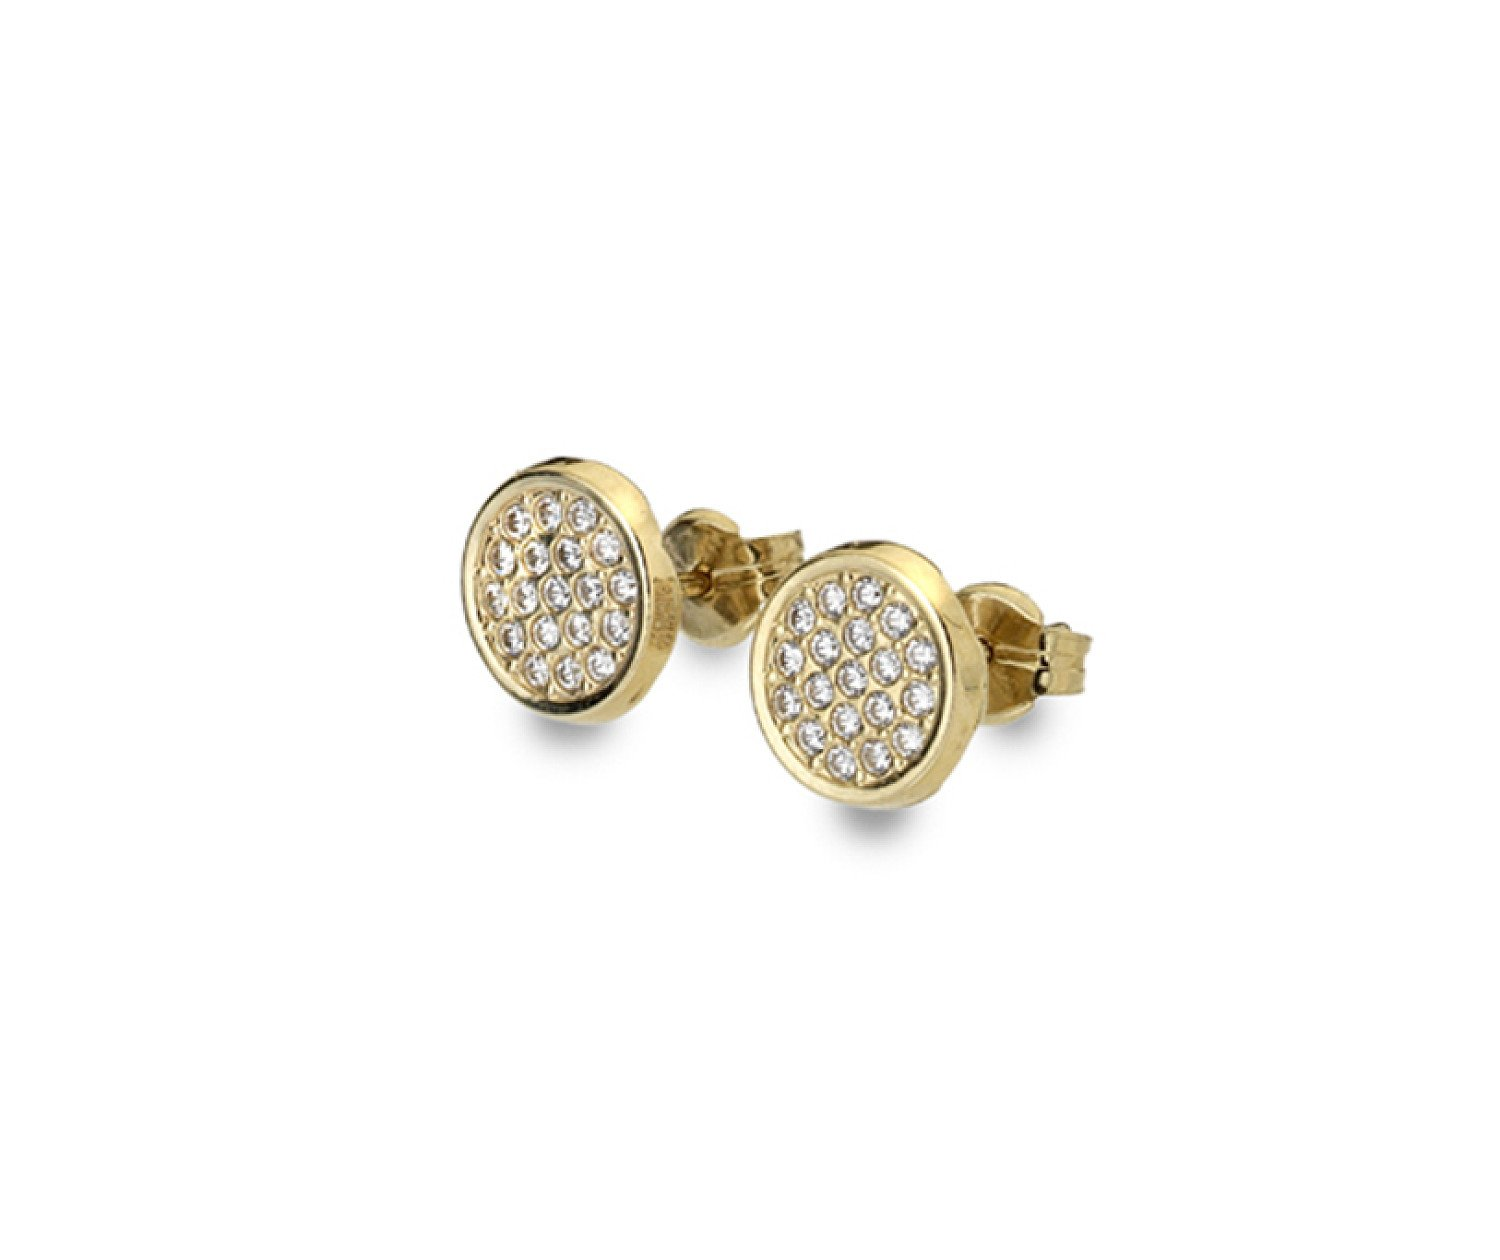 Large collection of 9ct gold earrings from Callibeau Jewellery